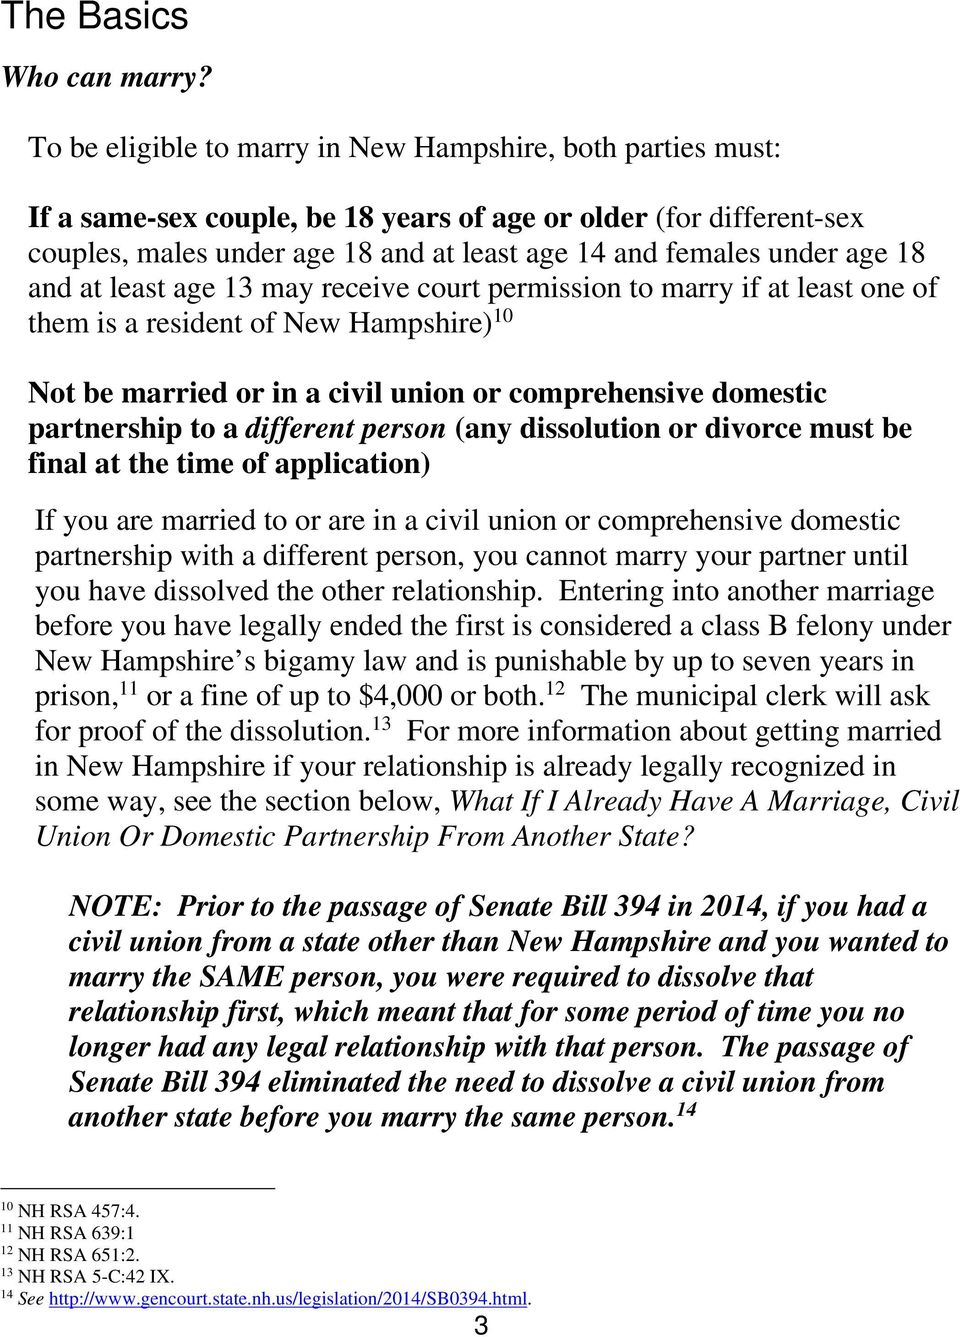 18 and at least age 13 may receive court permission to marry if at least one of them is a resident of New Hampshire) 10 Not be married or in a civil union or comprehensive domestic partnership to a